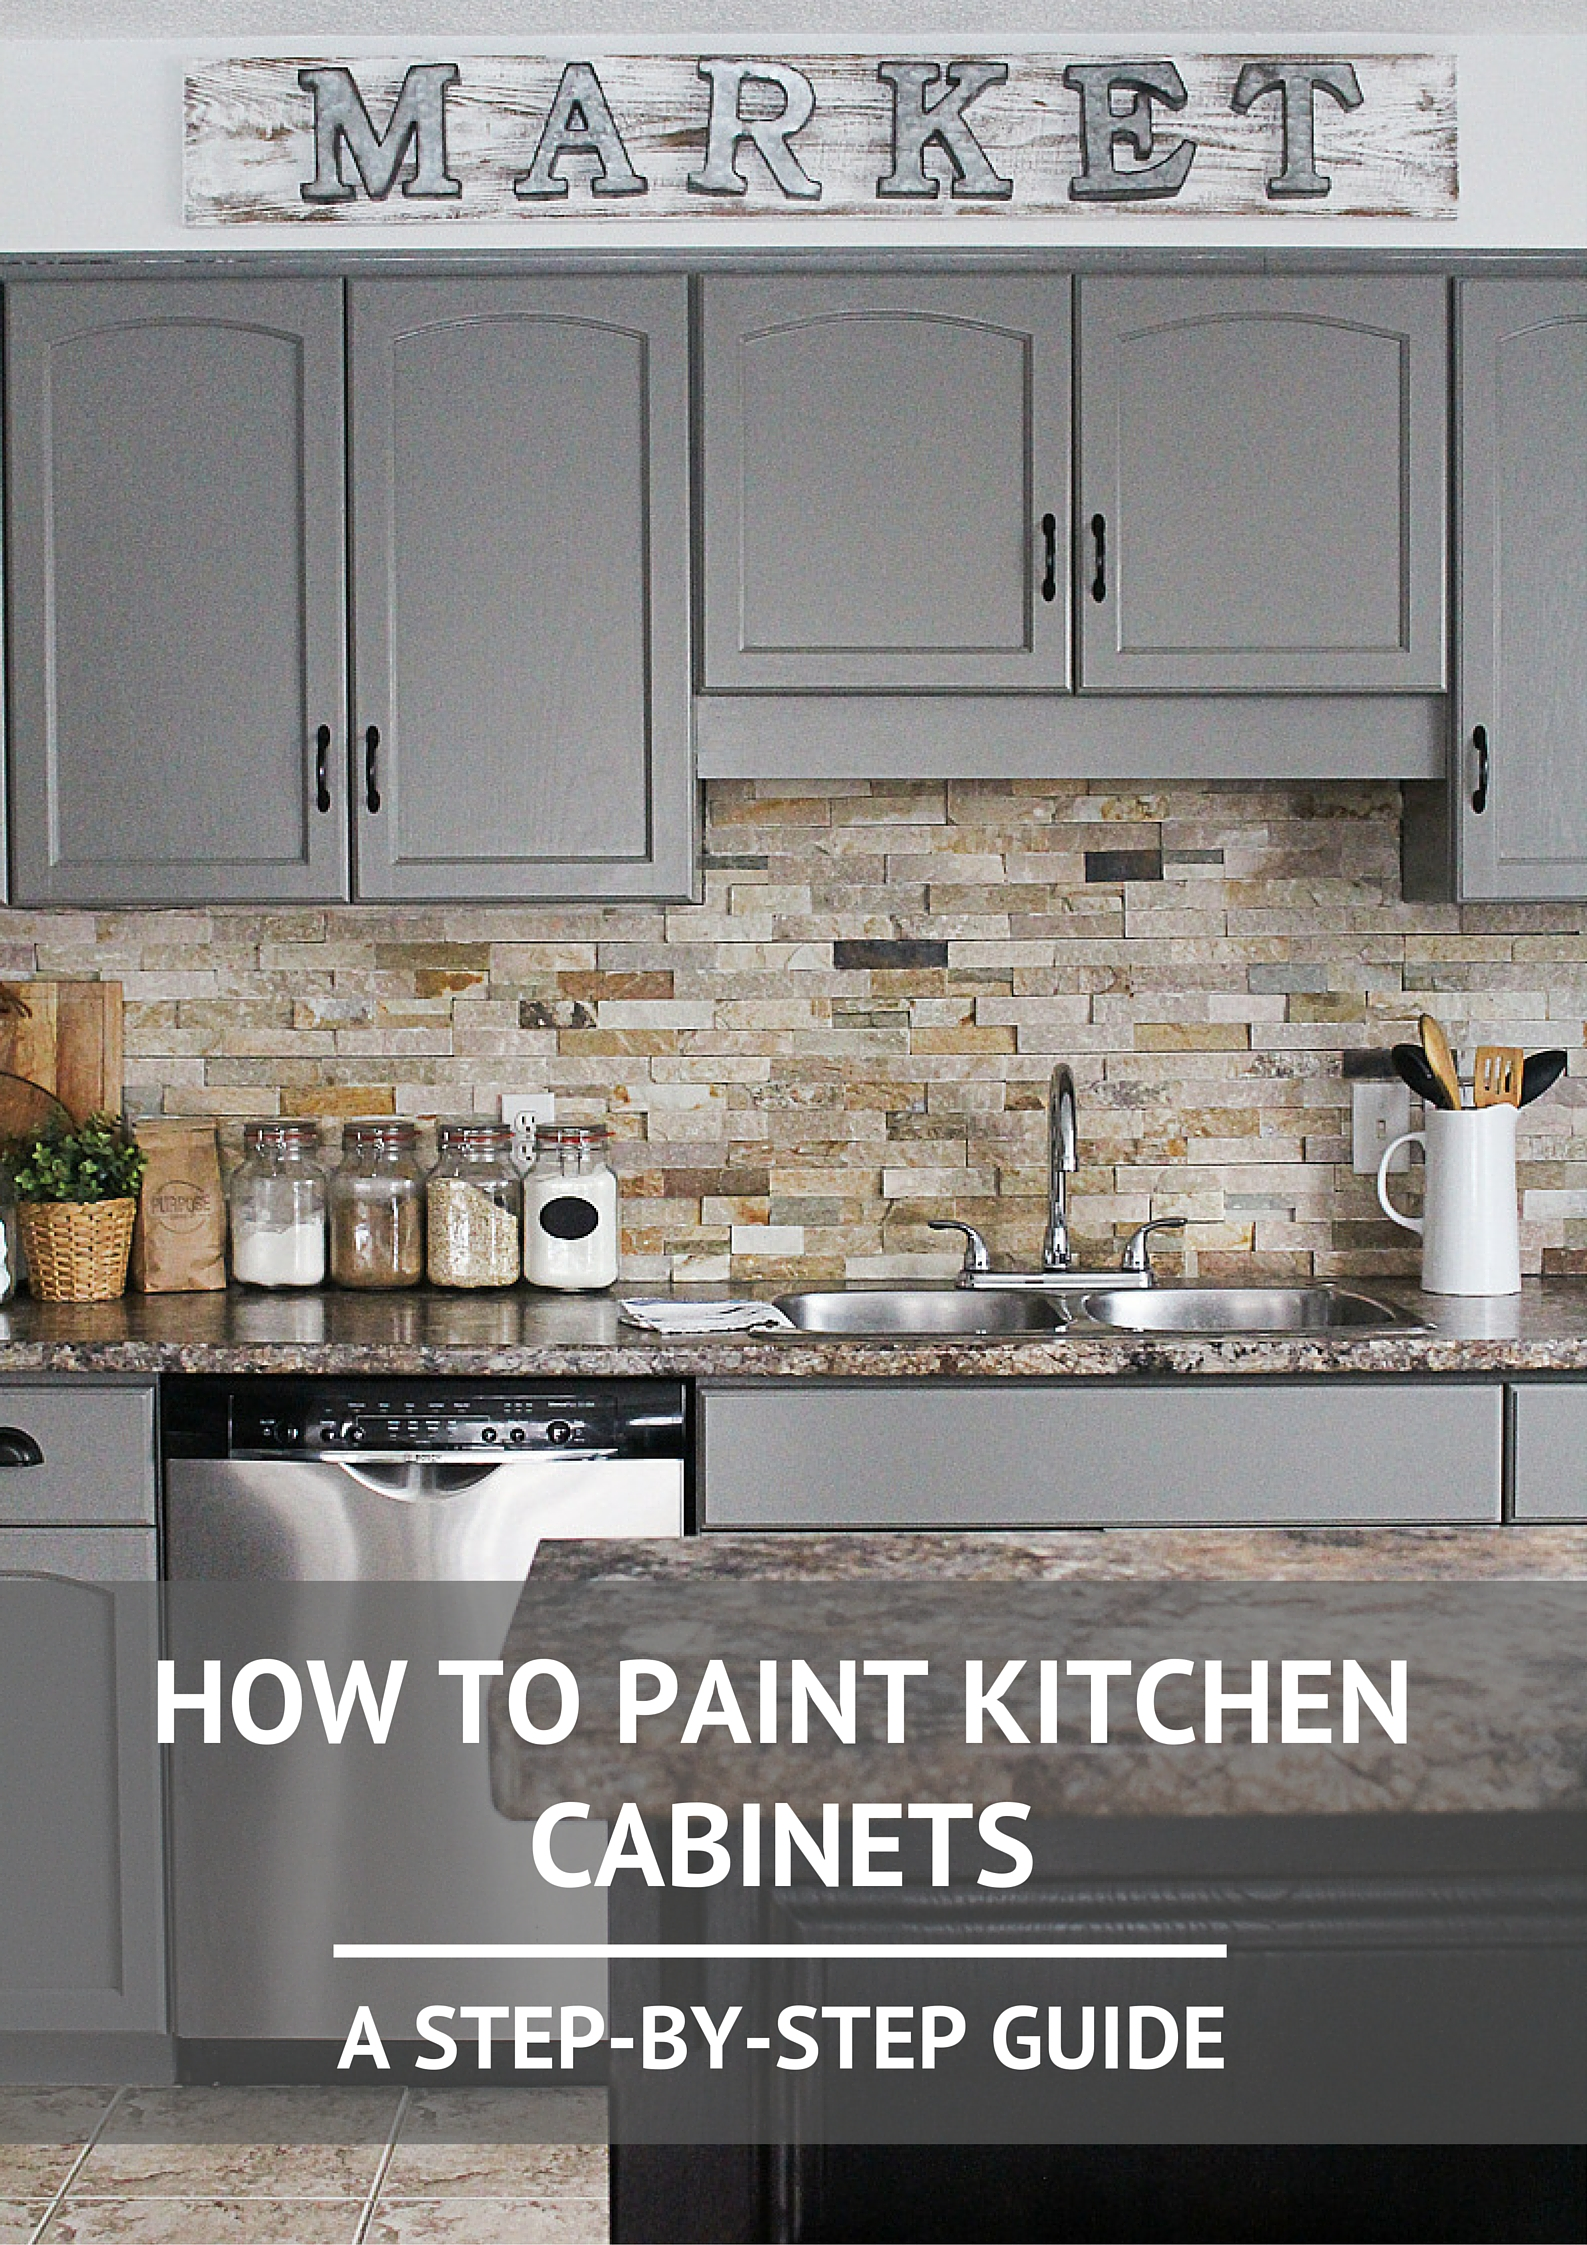 How To Paint Kitchen Cabinets Kassandra DeKoning - Where to buy grey kitchen cabinets